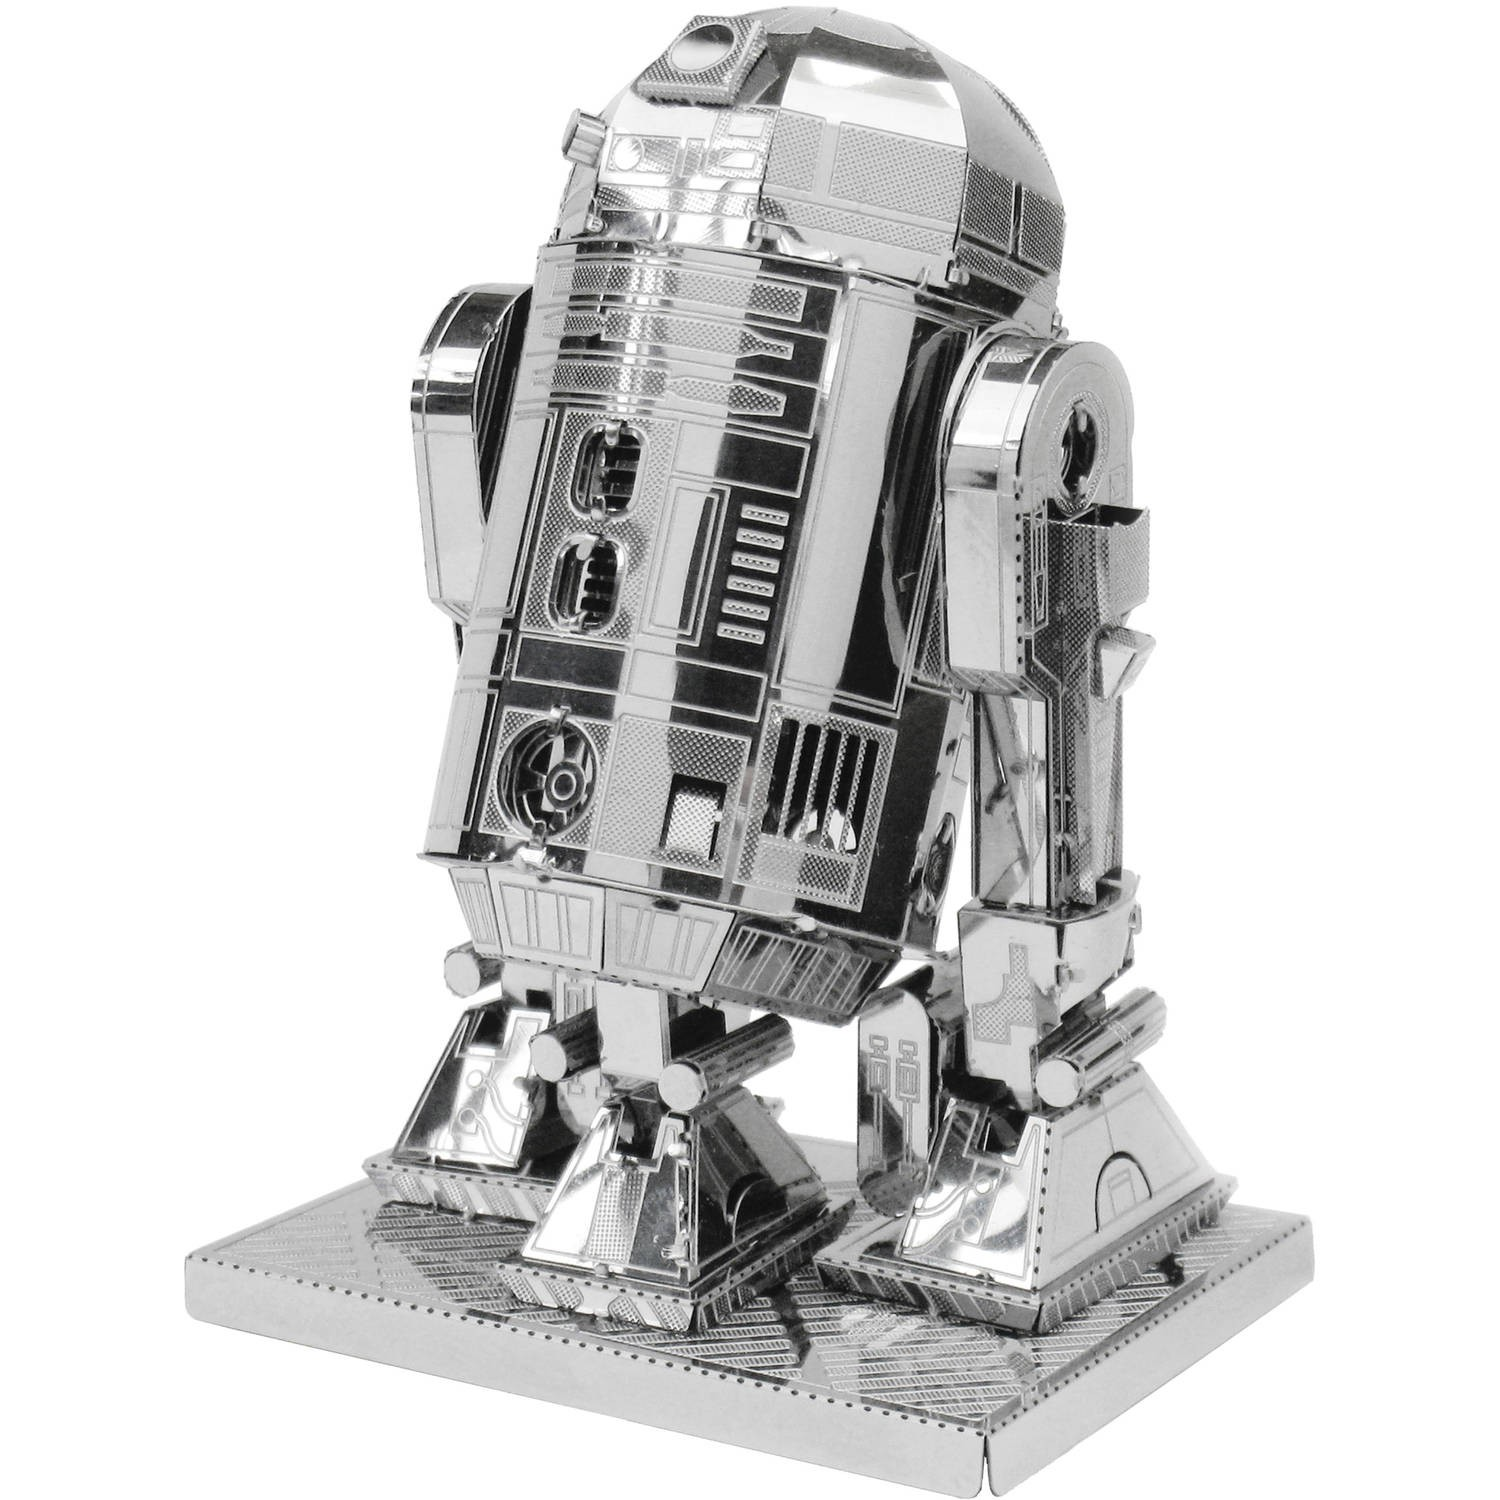 Metal Earth Star Wars R2-D2 Metallbausatz